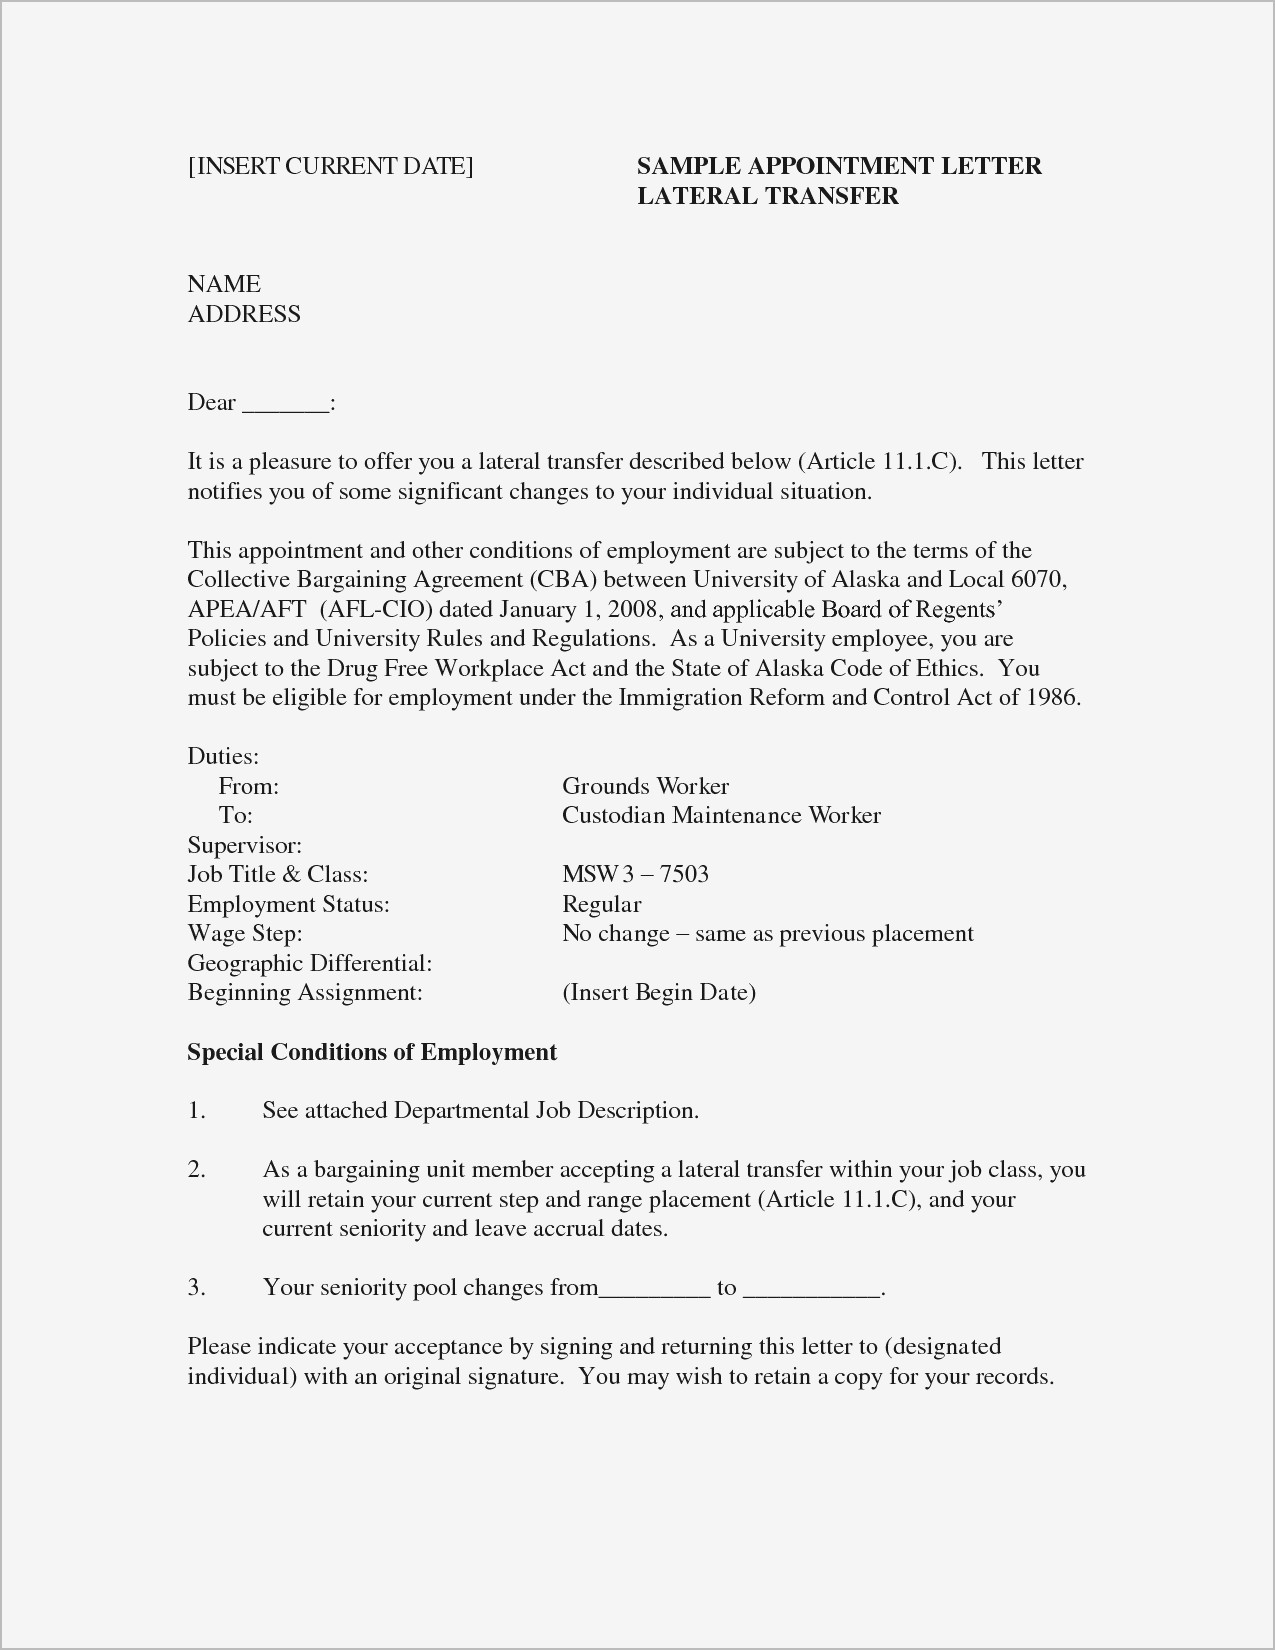 New Employee Offer Letter Template - Job Fer Letters From Employer New Job Fer Letter Template Us Copy